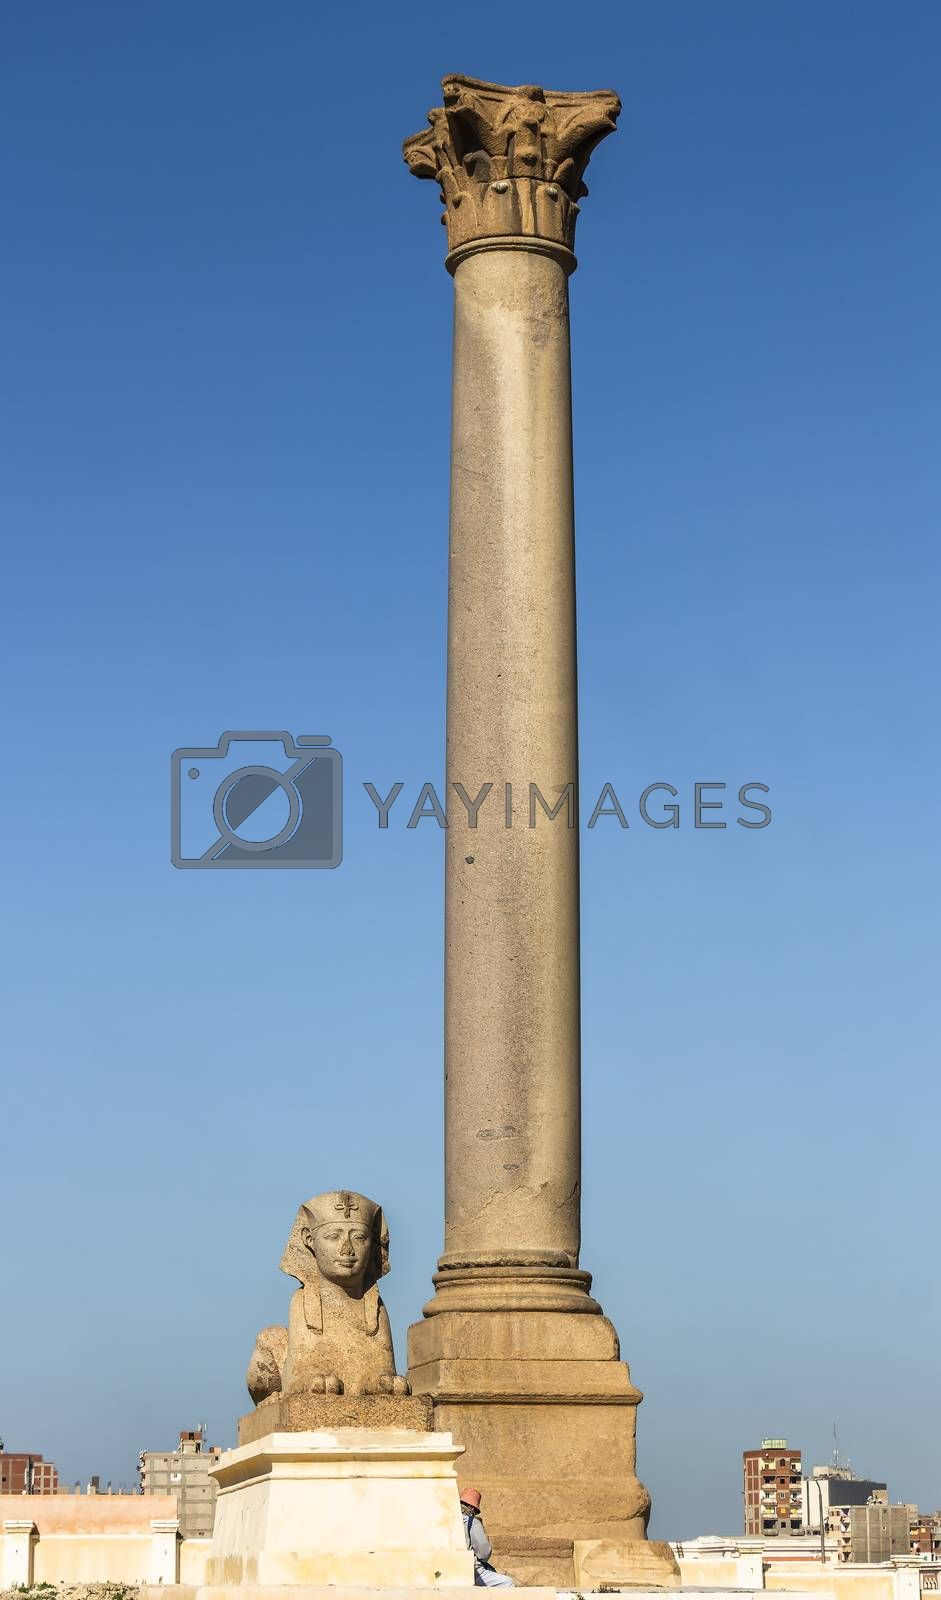 Pompey's Pillar, one of the largest monoliths Corinthian column and sphinxes stands at the eastern side of the temenos of the Serapeum of Alexandria